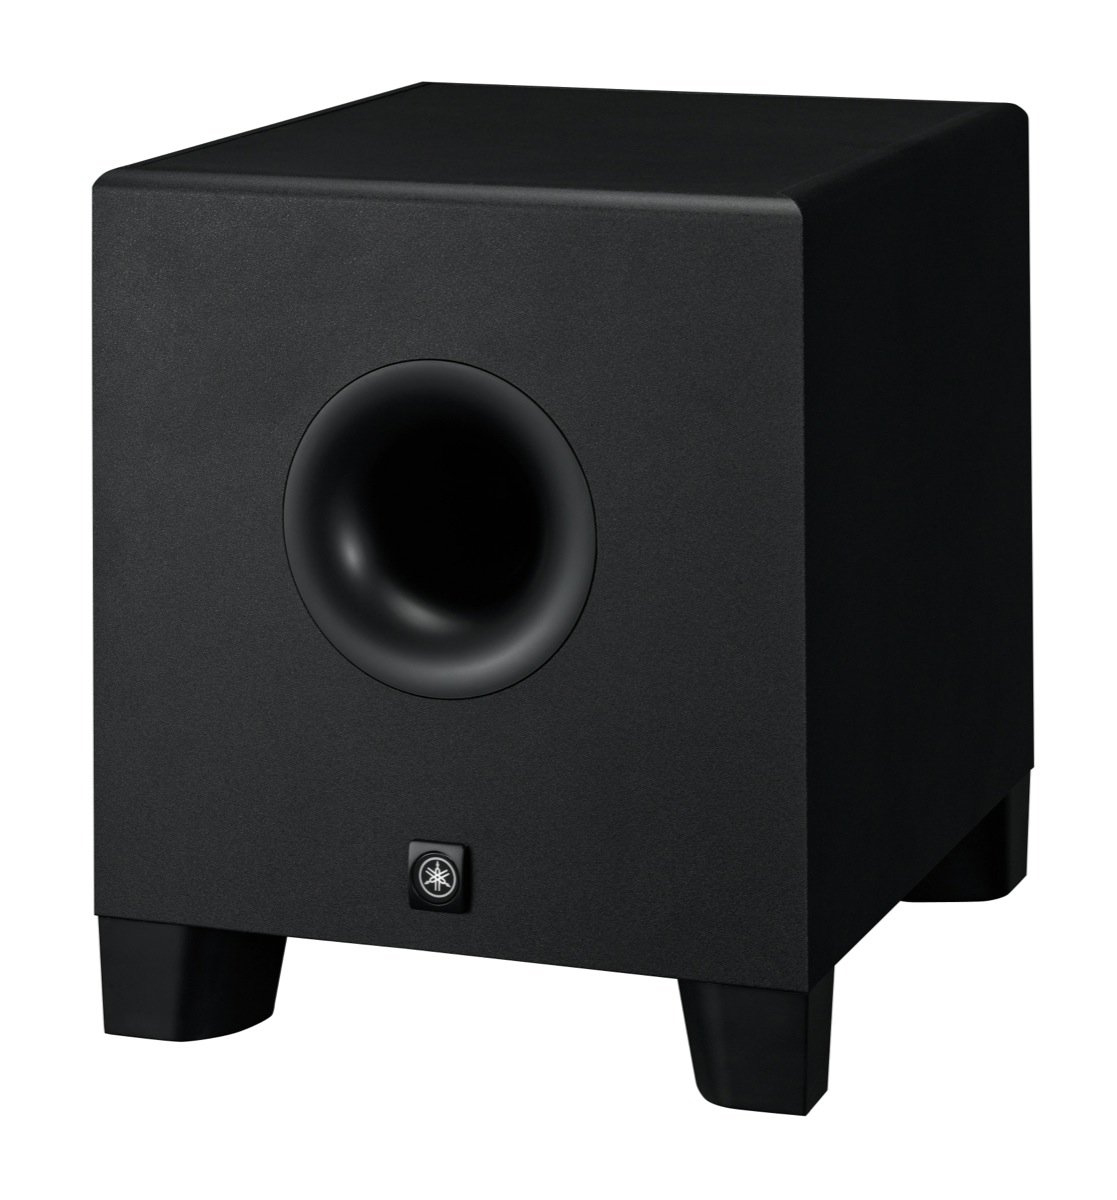 musicworks home studio recording studio sub woofers studio subwoofers yamaha hs series. Black Bedroom Furniture Sets. Home Design Ideas